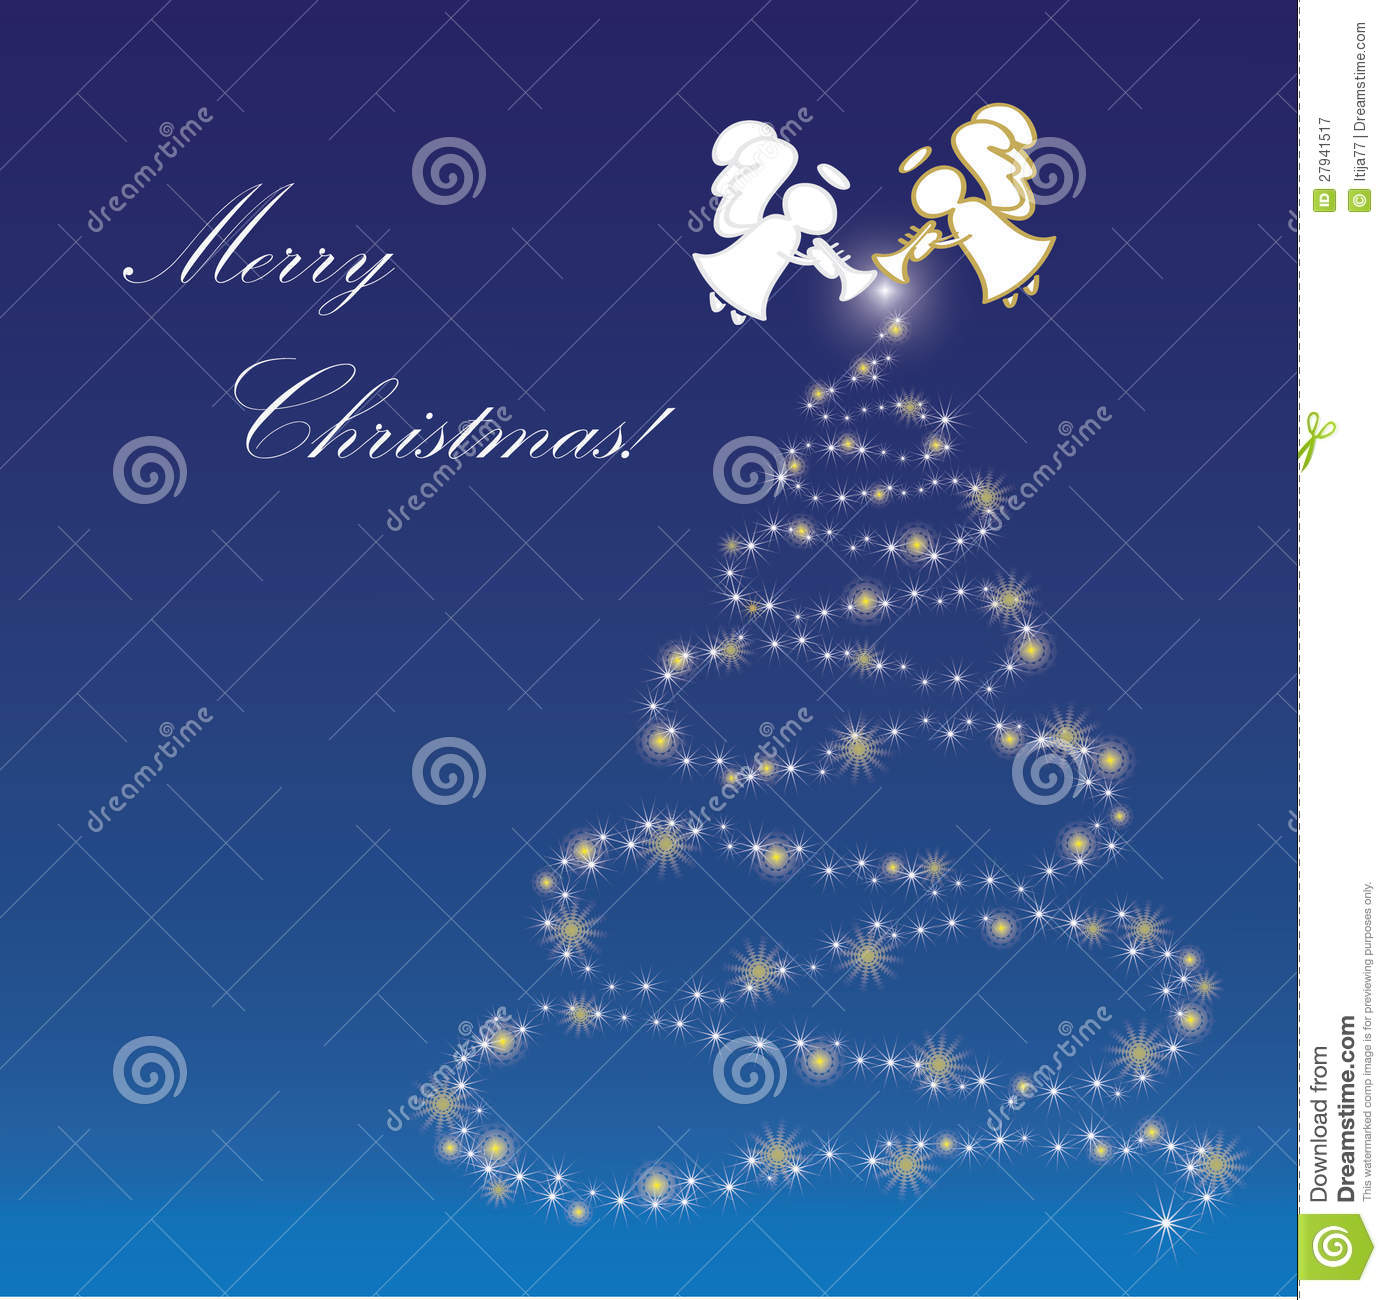 Angels Christmas Background.Christmas Background With Angels Stock Vector Illustration